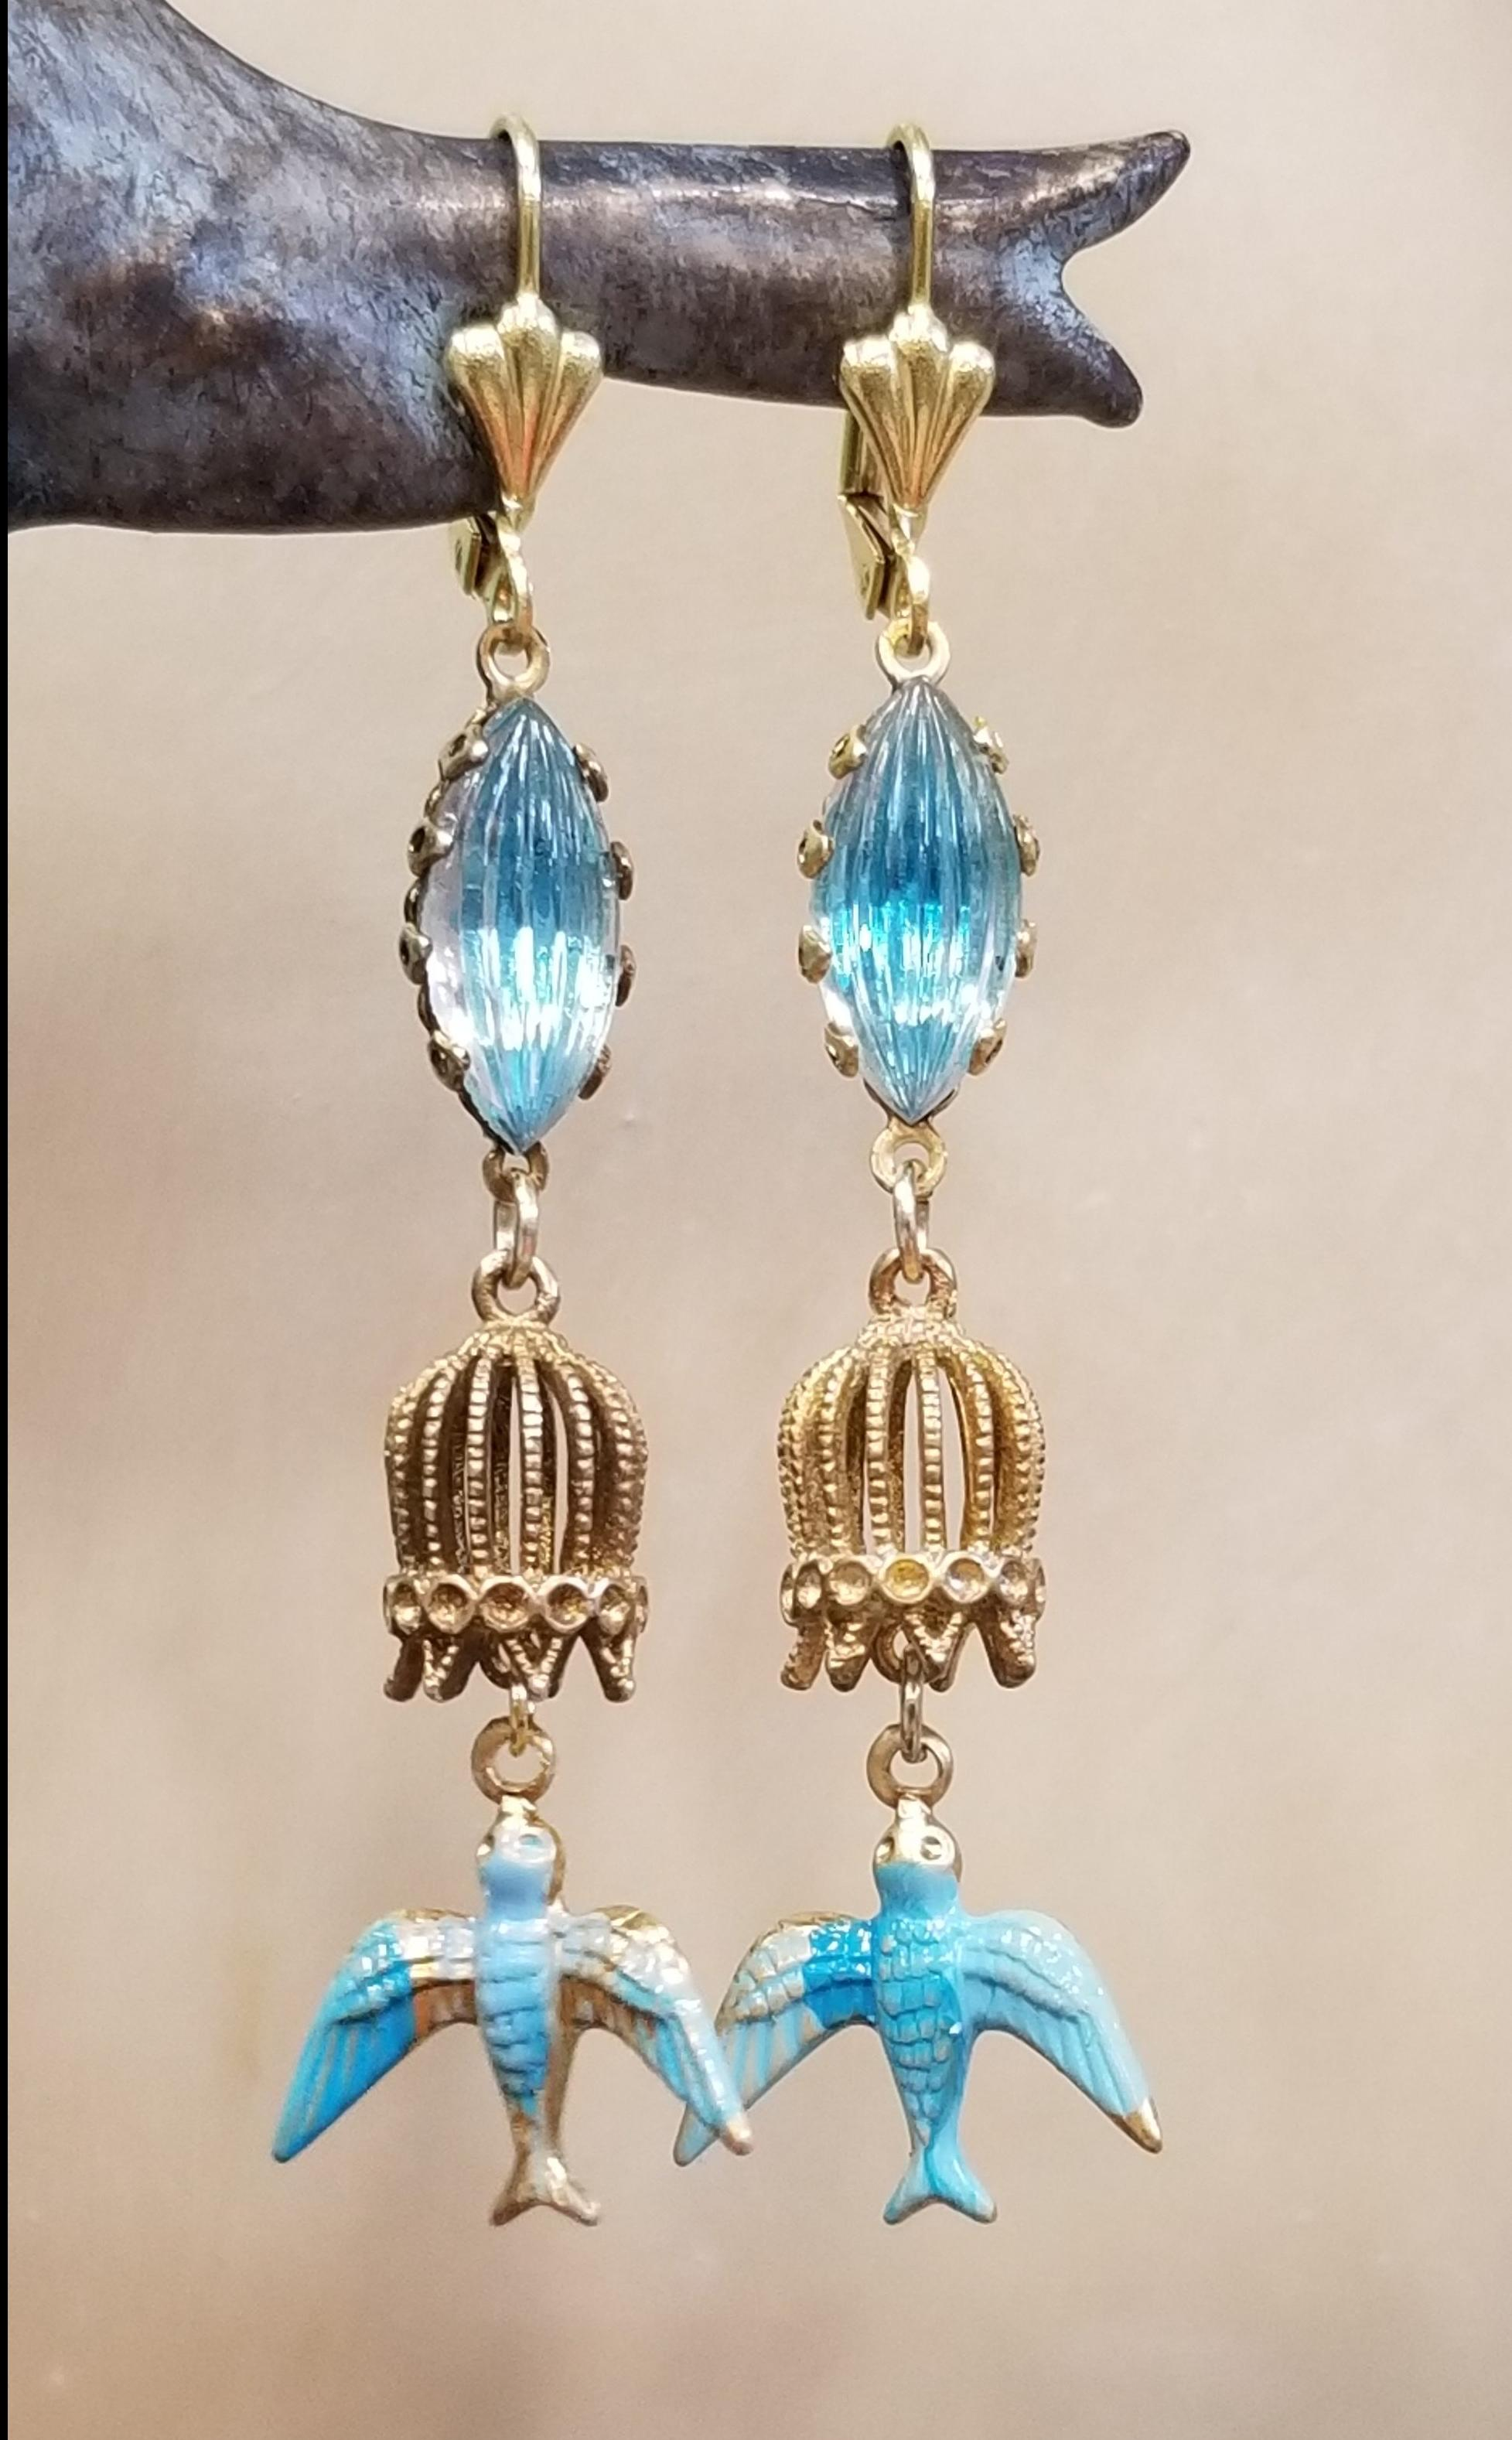 Bird Cage And Bluebird Earrings Behold Jewelry Designs West Hartford Ct